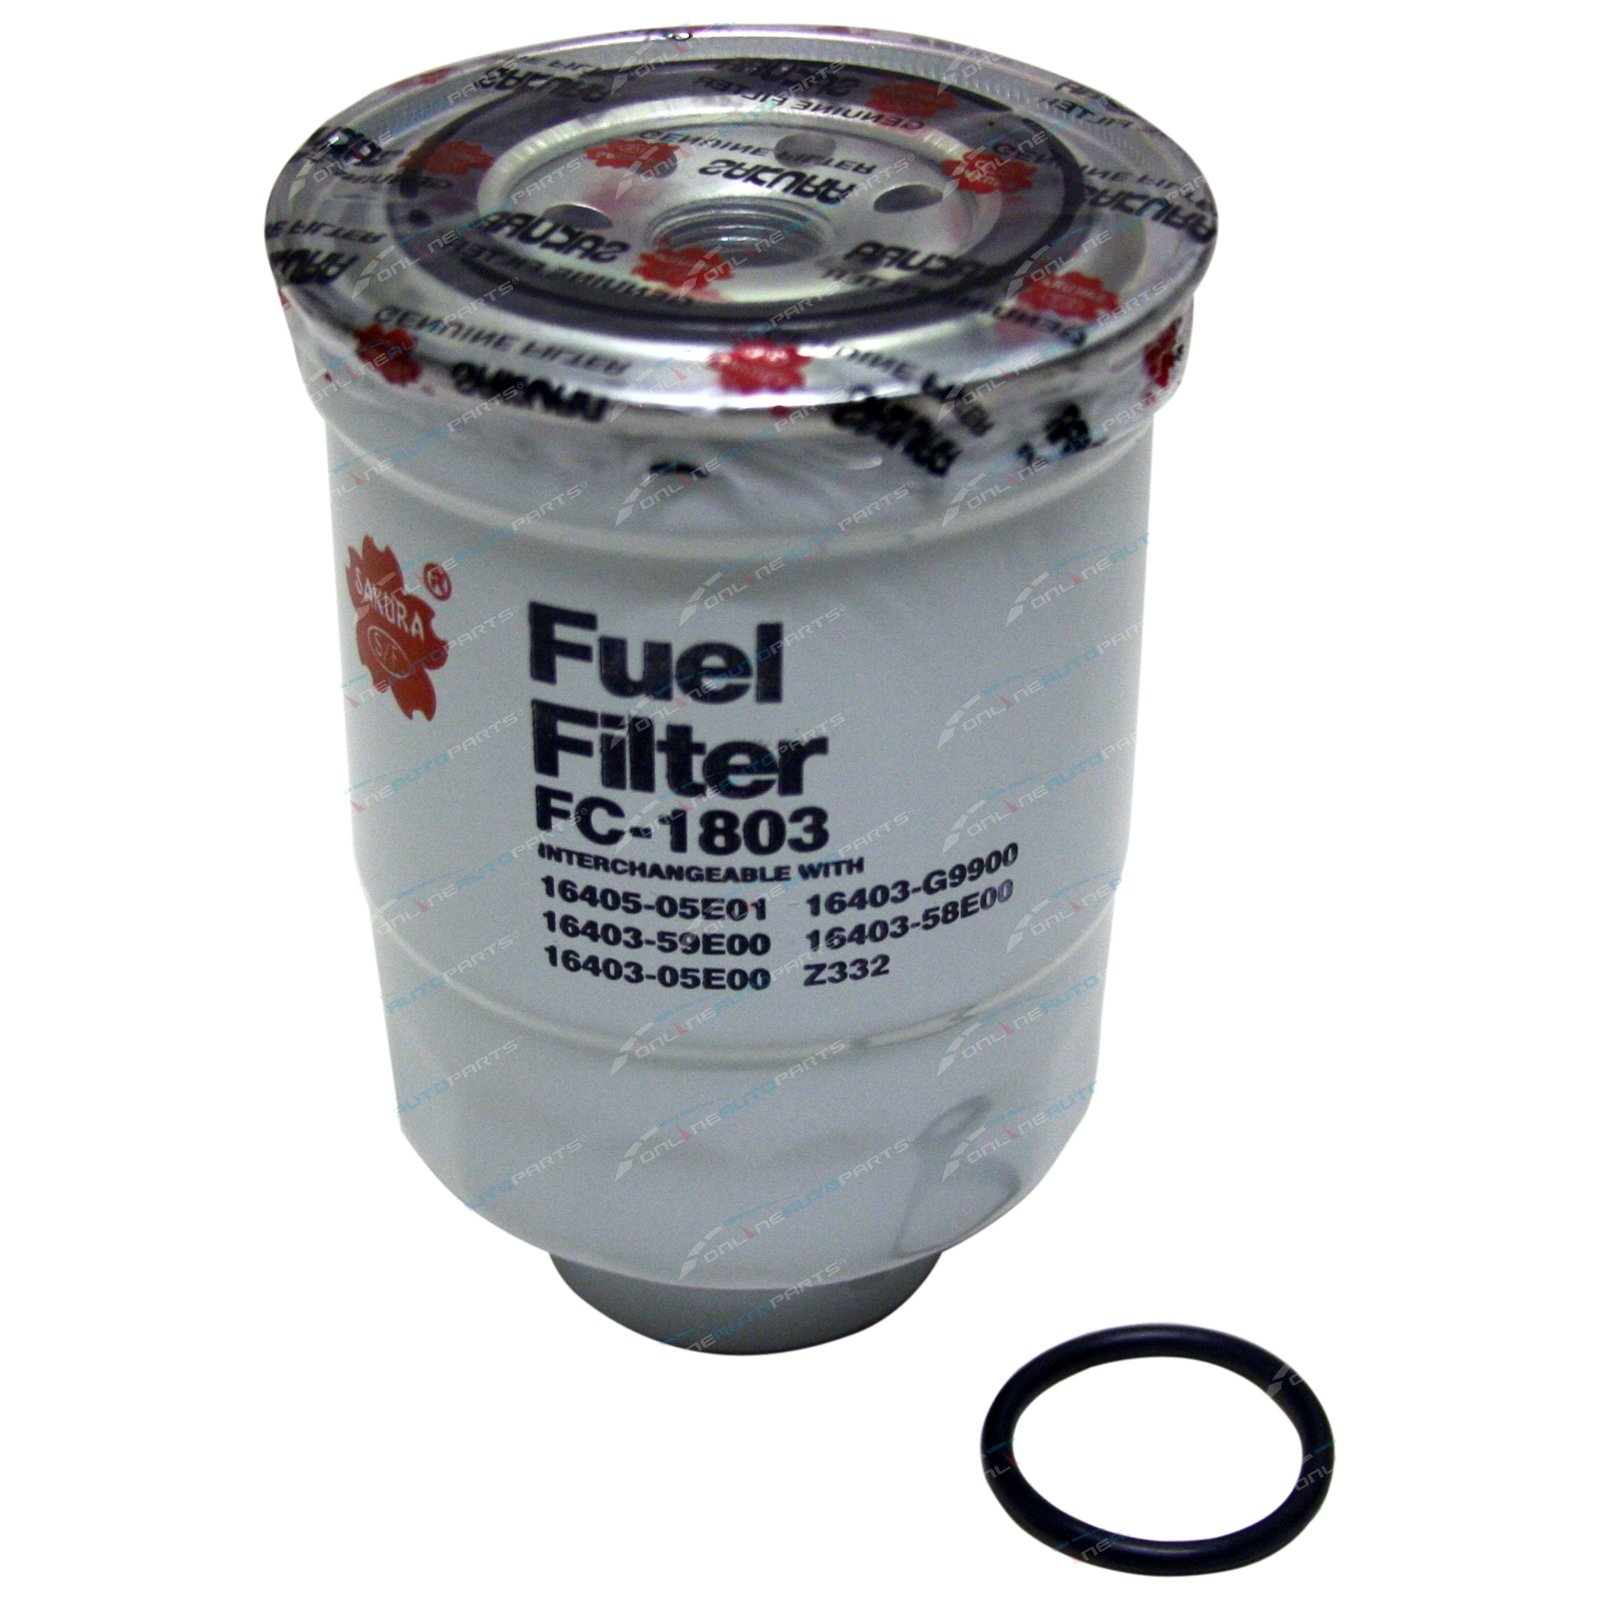 Fuel Filter Suits Nissan Patrol Diesel Gq Gu Y60 Y61 28l 30l 42l For 04 14 0l Frieghtliner Click To Enlarge